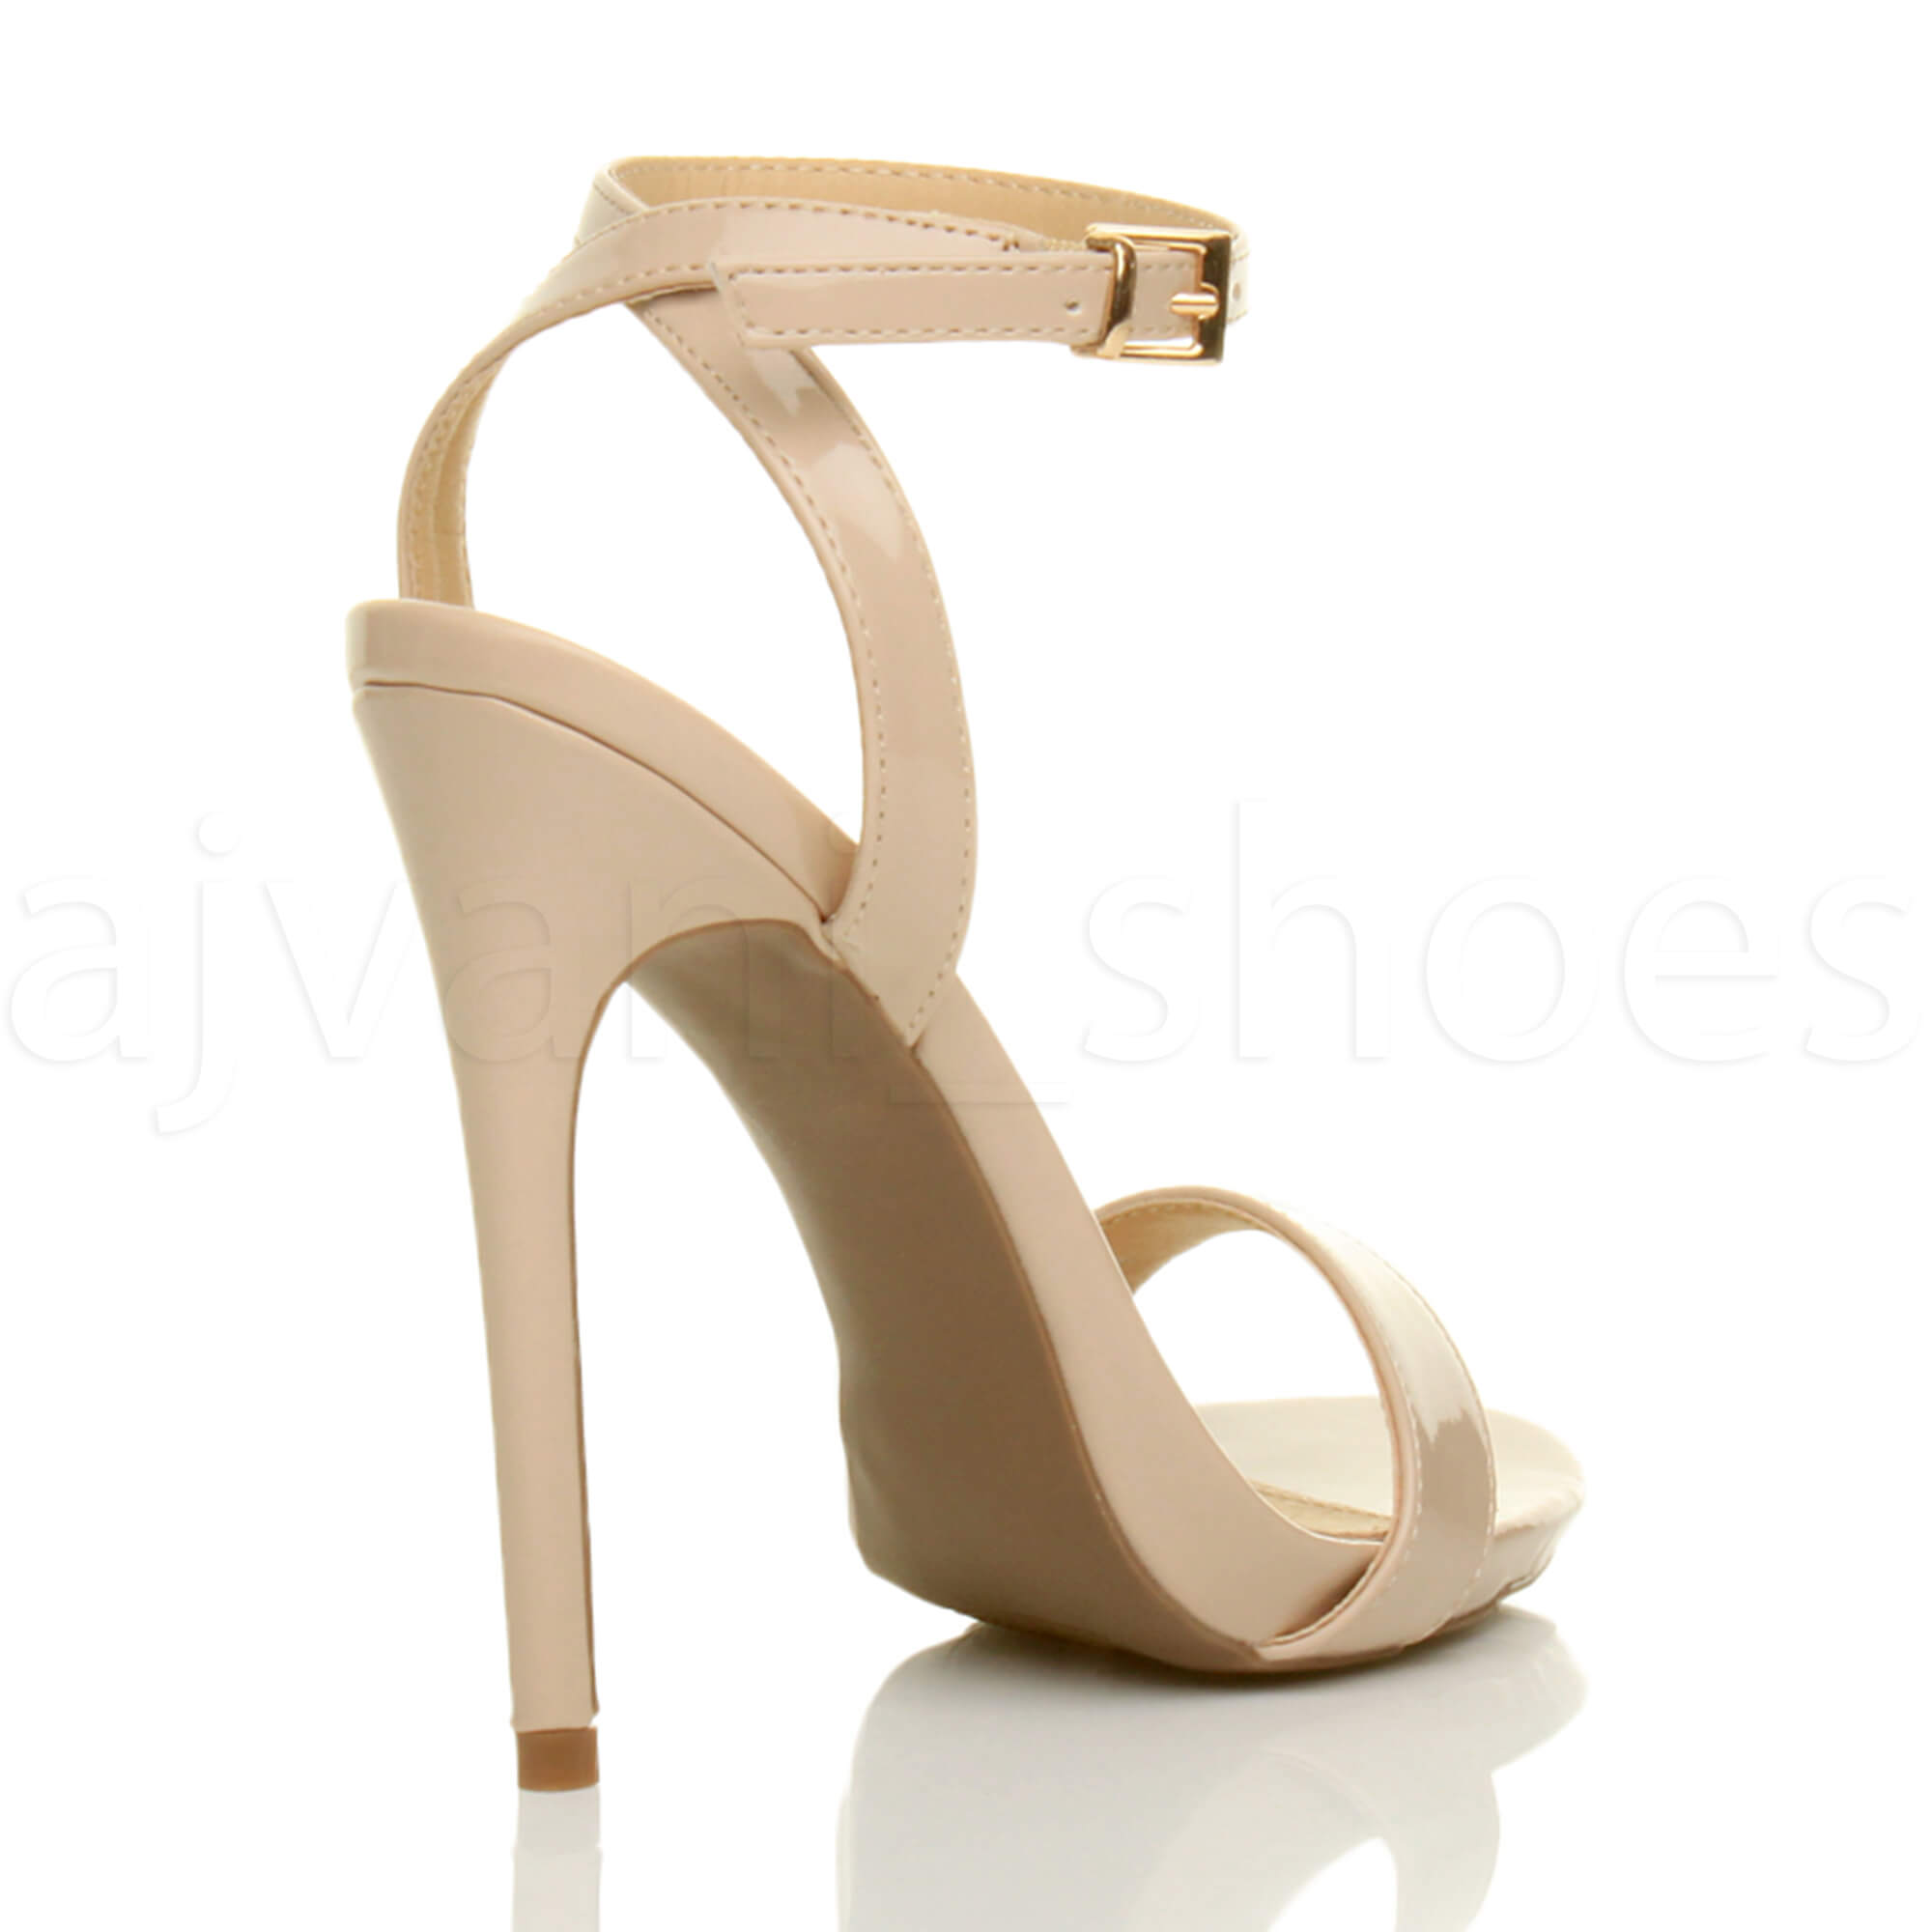 WOMENS-LADIES-HIGH-HEEL-ANKLE-STRAP-BARELY-THERE-STRAPPY-SANDALS-SHOES-SIZE thumbnail 75